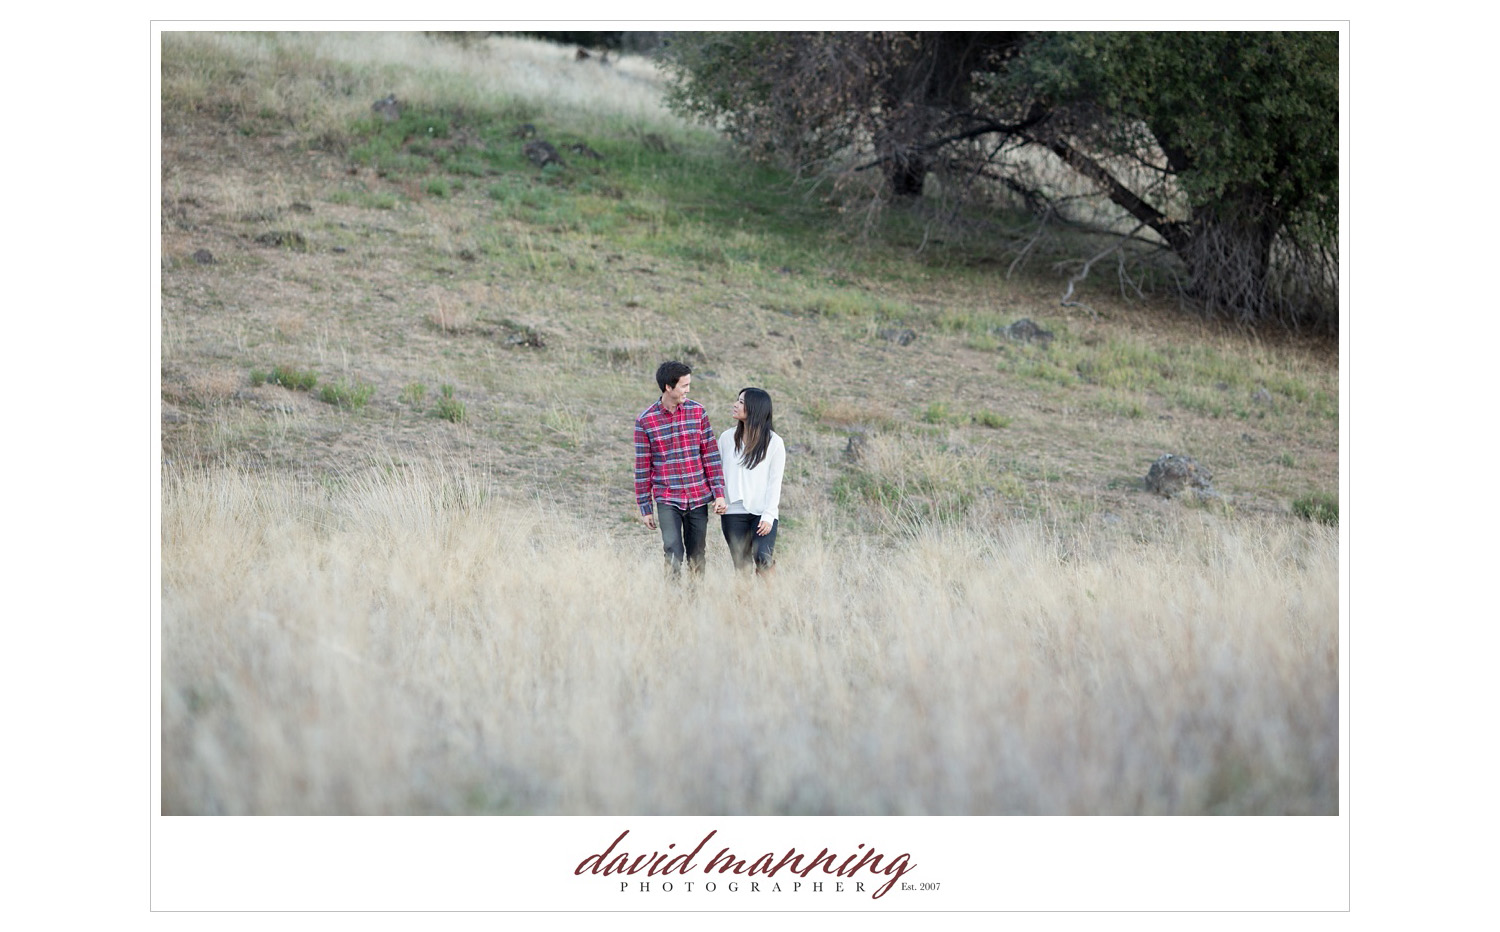 Del-Mar-Ramona-Julian-Engagement-Photos-David-Manning-Photographers-0013.jpg